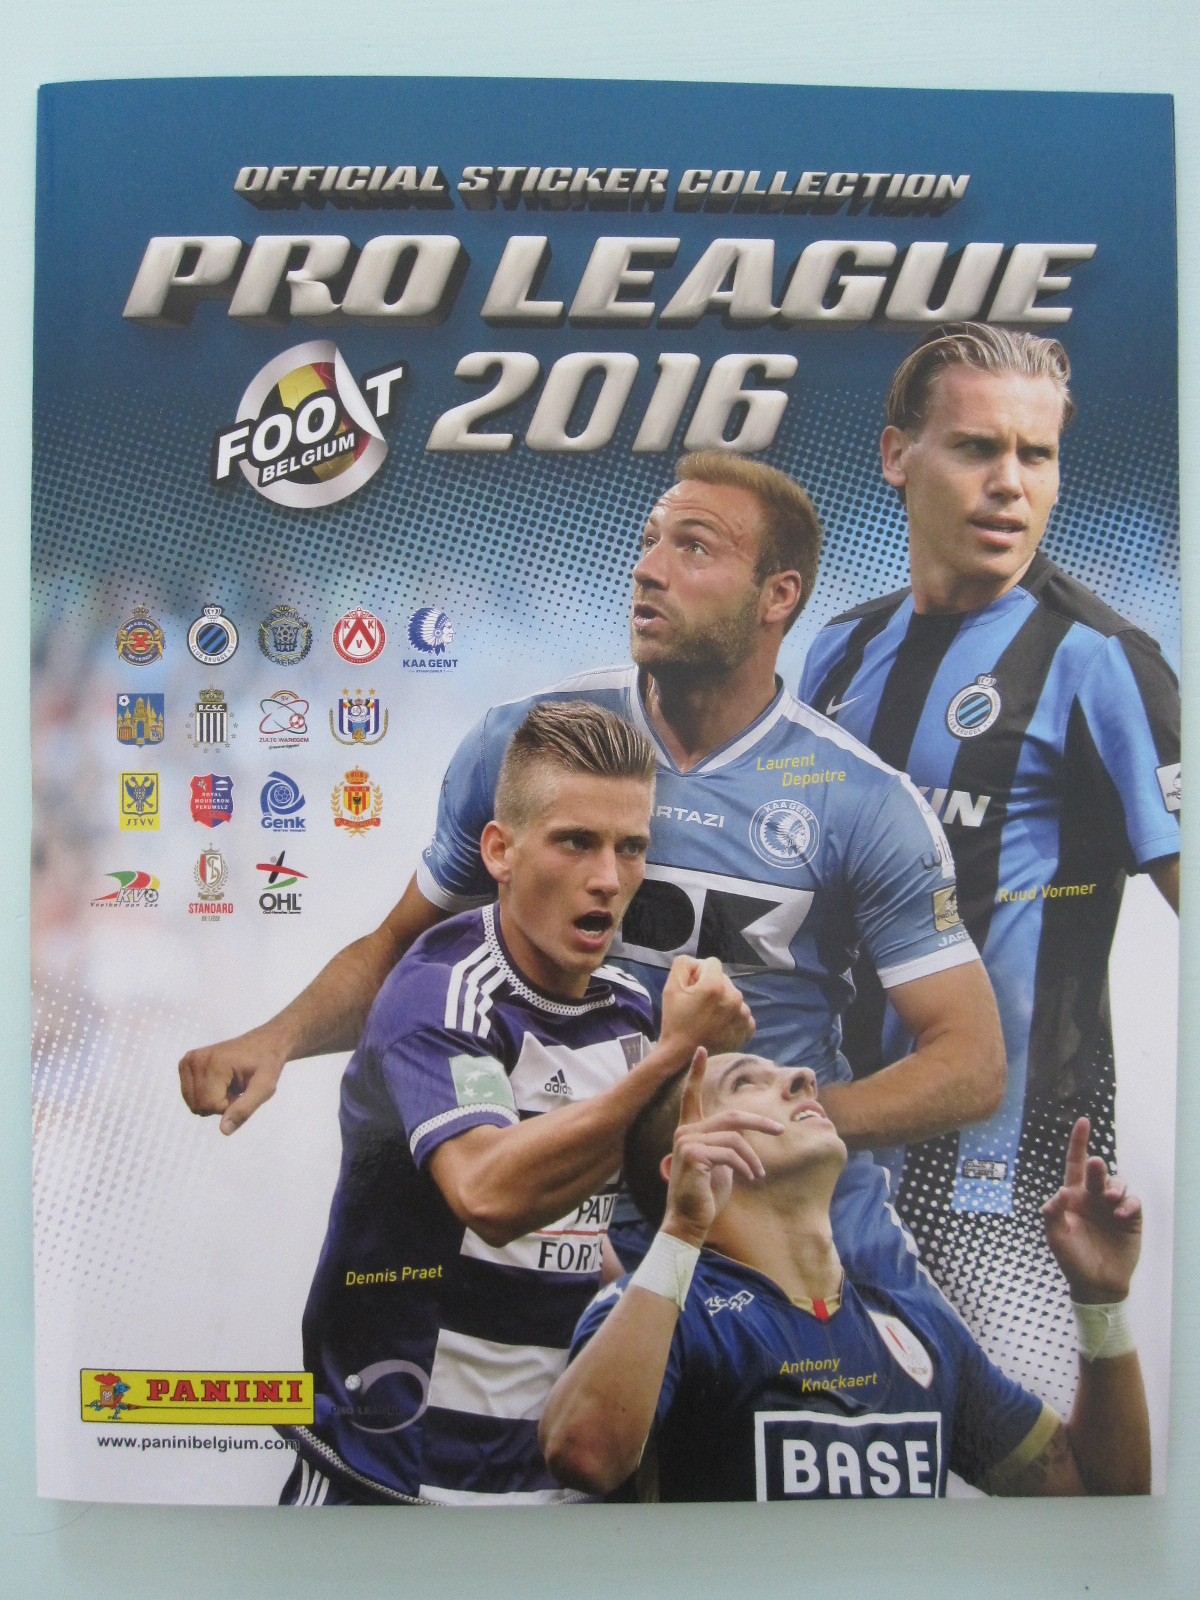 Pro Only Launch Lipstick Swatches Photos: Only Good Stickers: Panini Pro League 2016